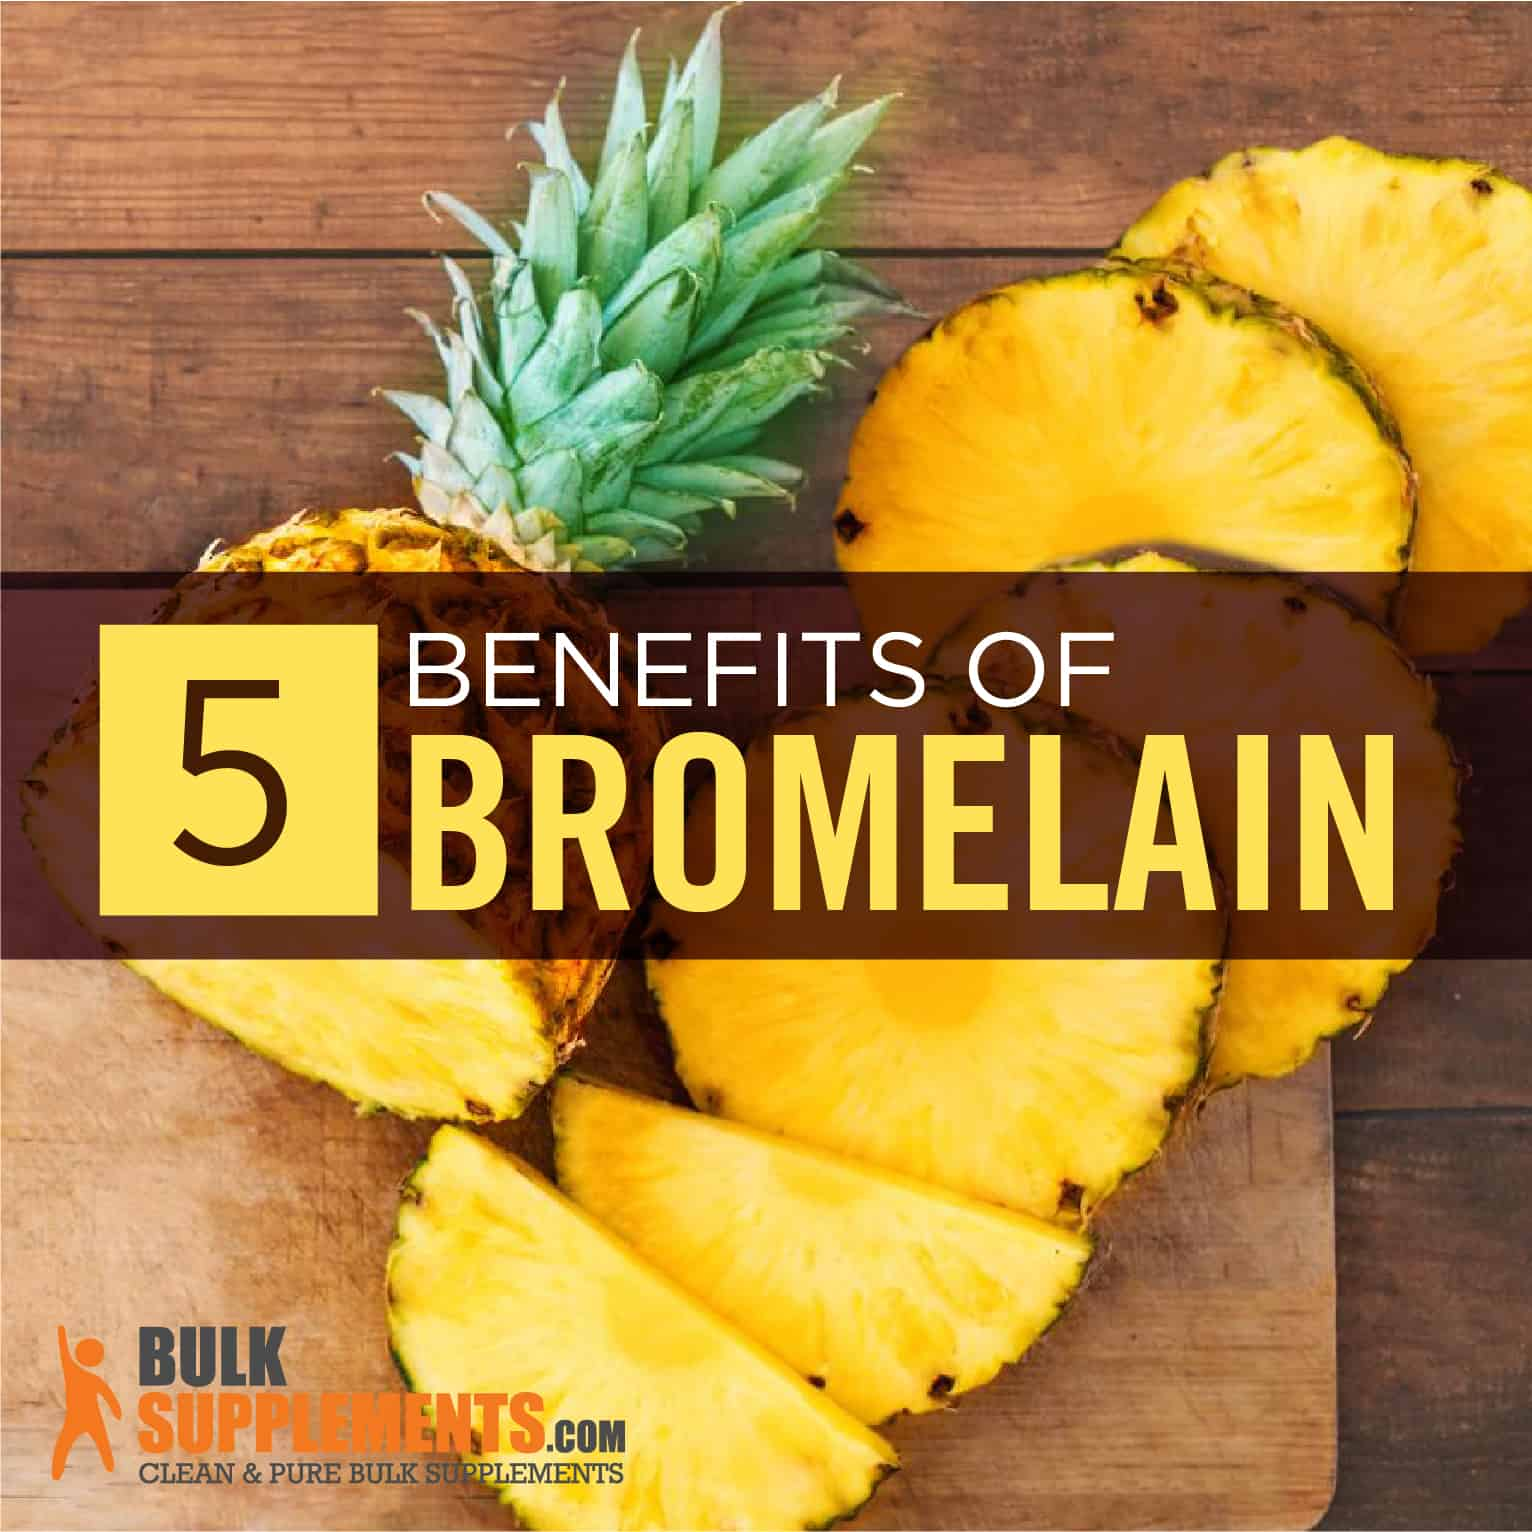 Bromelain Benefits Side Effects Dosage Bulksupplements Com